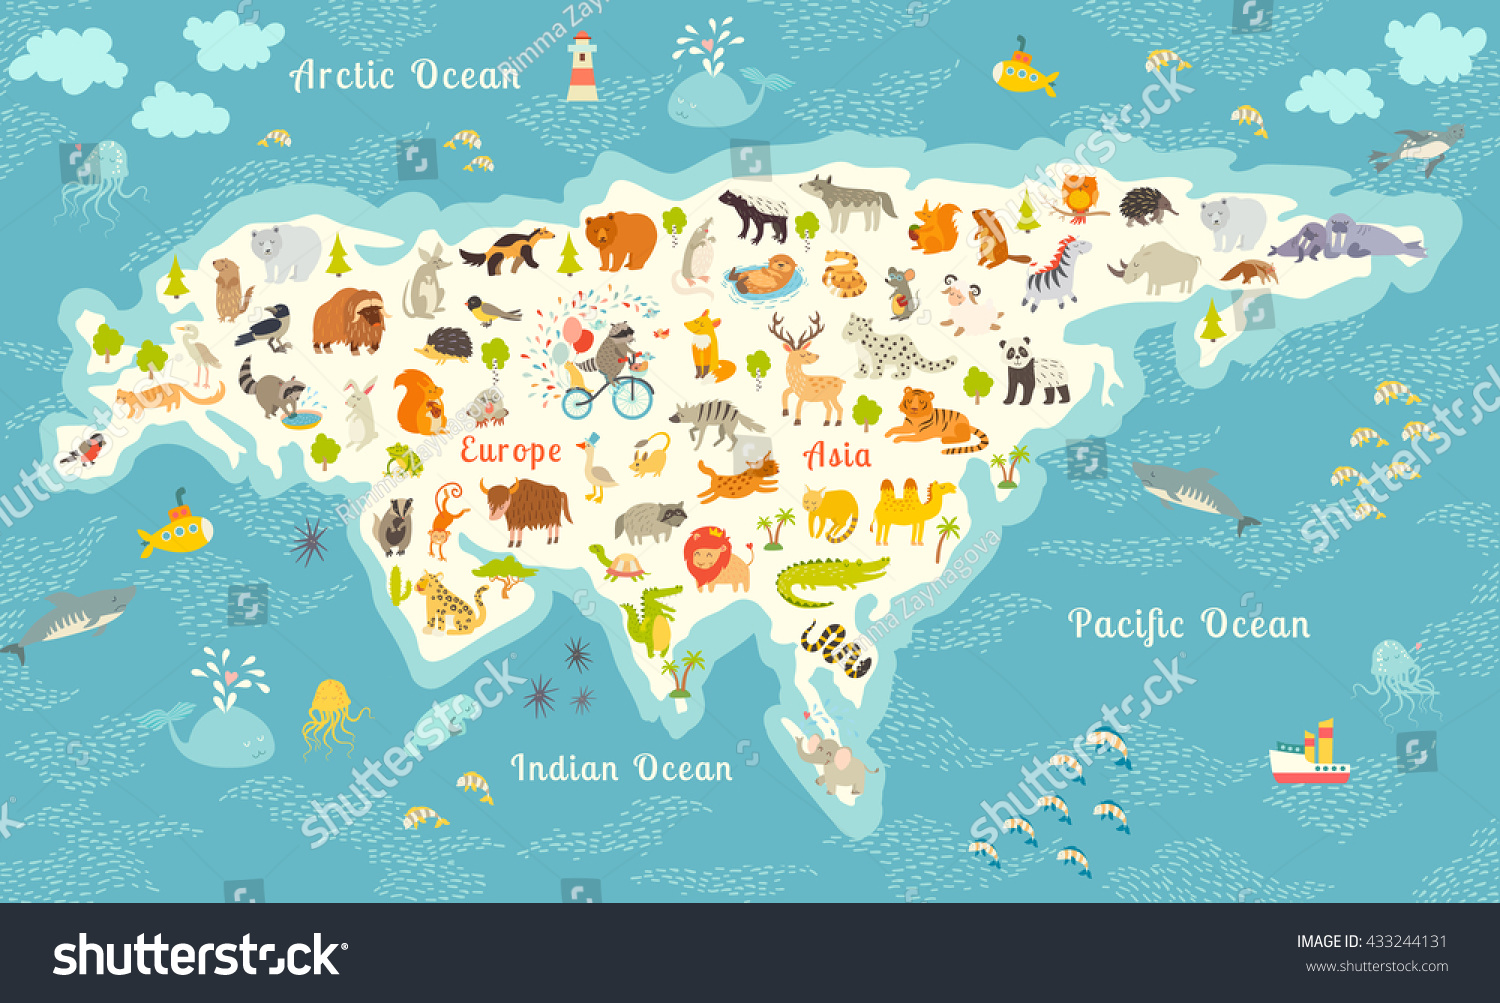 Animals World Map North America Colorful Stock Illustration - World map north america